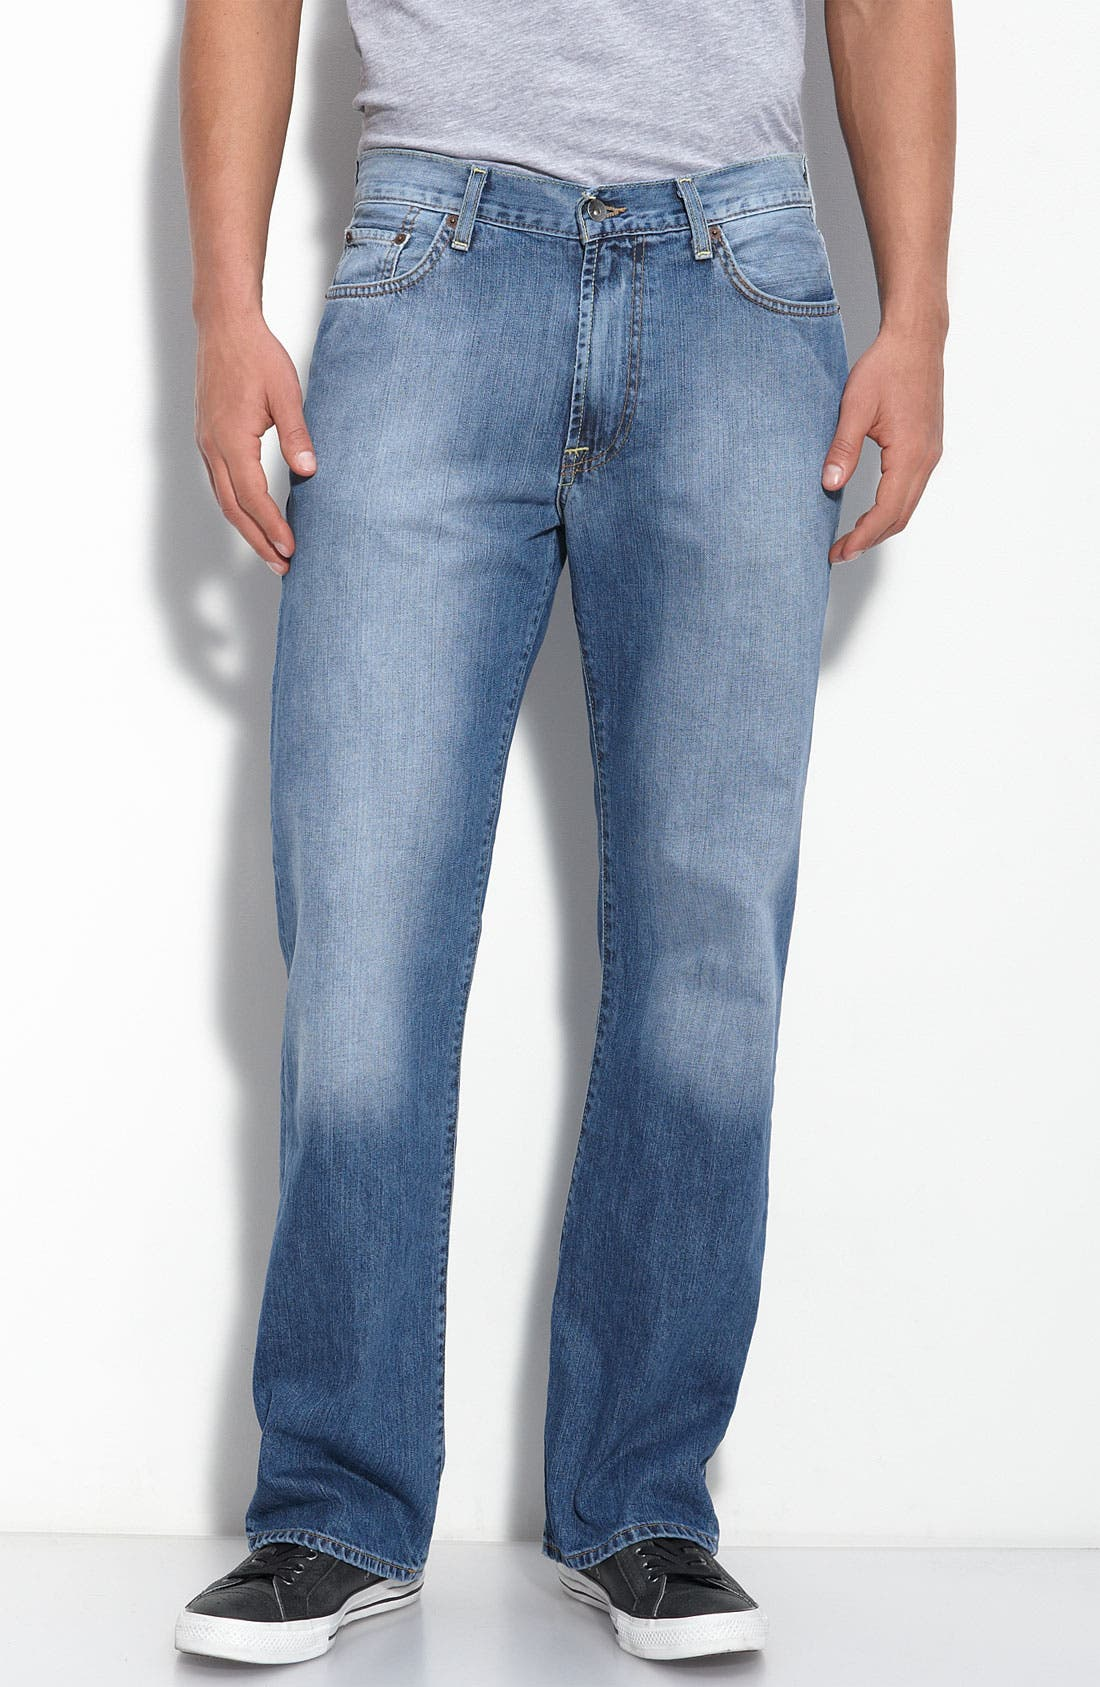 Alternate Image 1 Selected - Lucky Brand Straight Leg Jeans (Ol' Summer Camp)(Big & Tall) (Online Only)